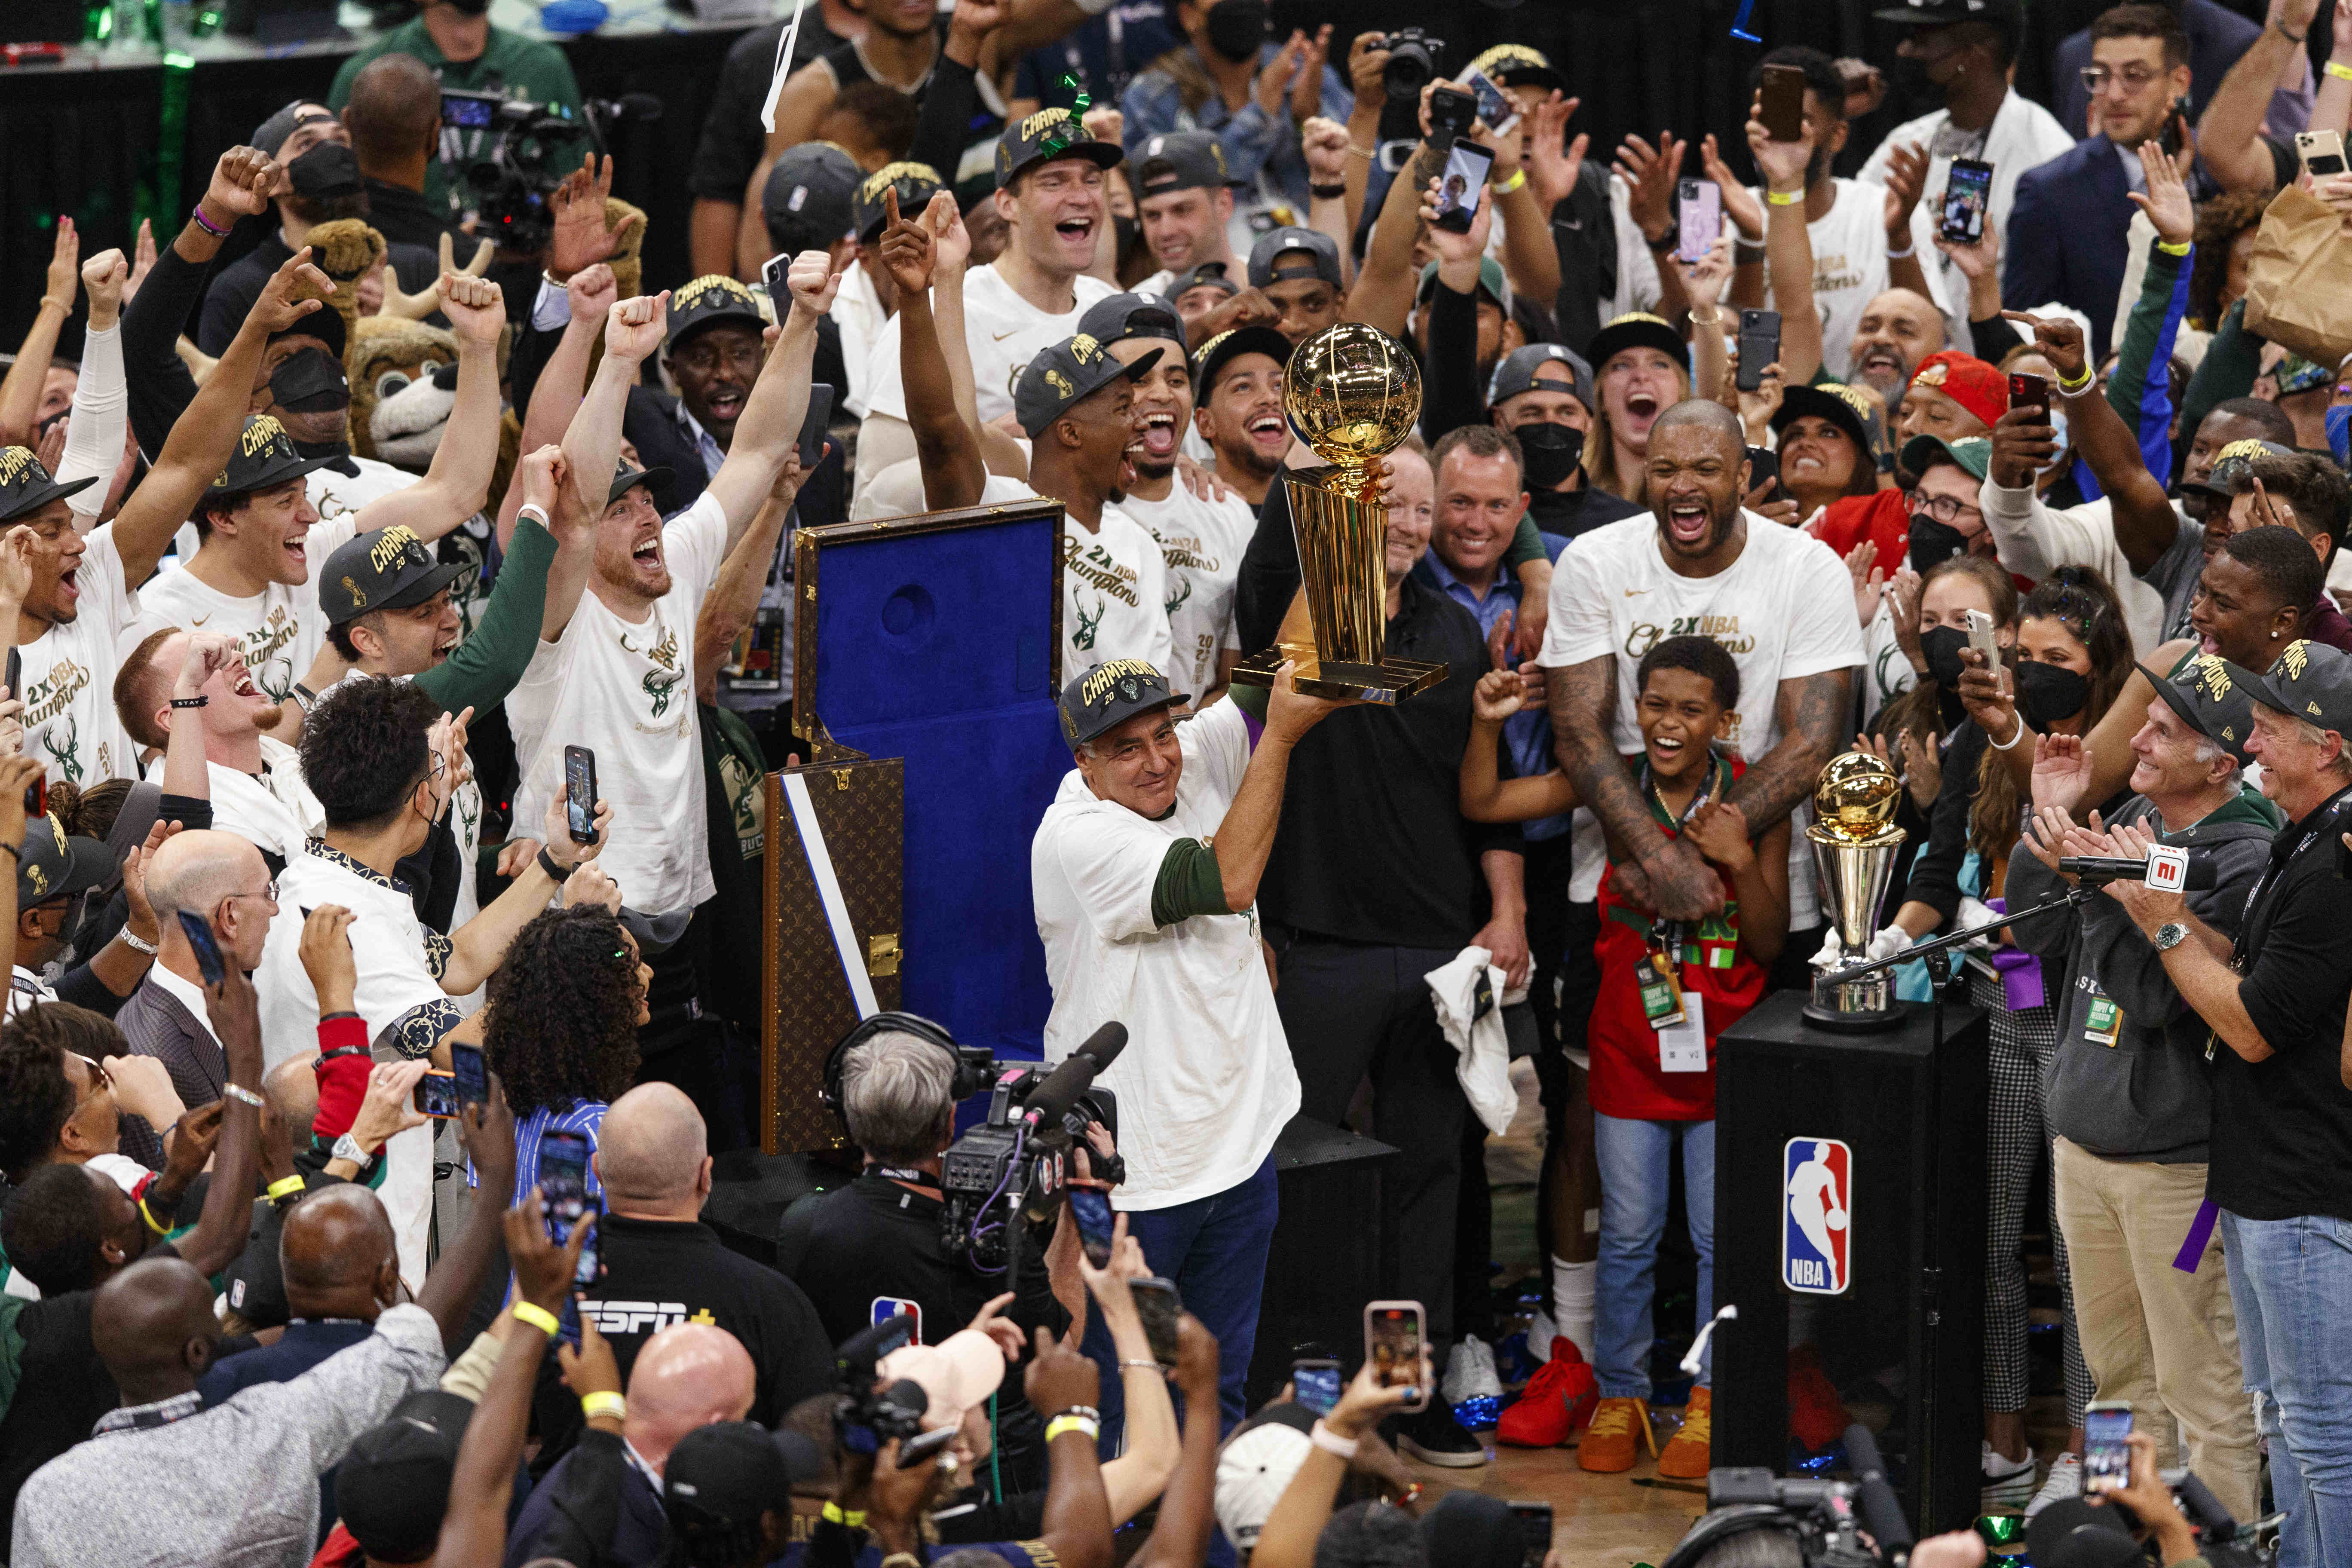 Jul 20, 2021; Milwaukee, Wisconsin, USA; Milwaukee Bucks owner Wes Edens holds up the Larry OÕBrien trophy following game six of the 2021 NBA Finals agains the Phoenix Suns at Fiserv Forum. Mandatory Credit: Jeff Hanisch-USA TODAY Sports